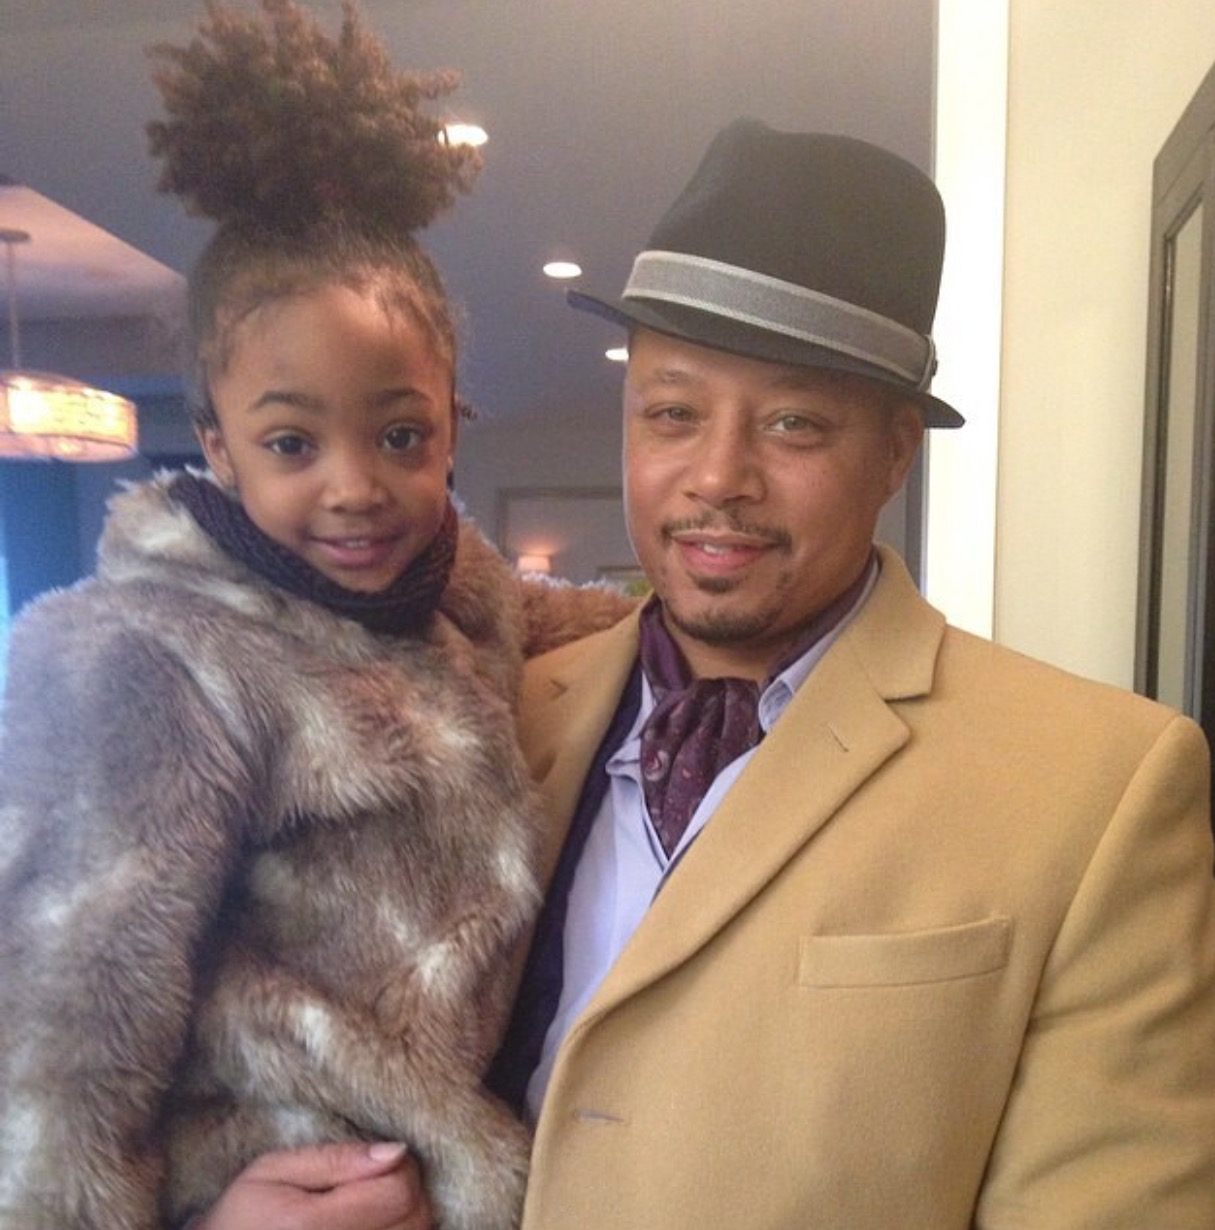 Leah Jeffires with Terrence Howard who plays Lucious Lyon on Empire.